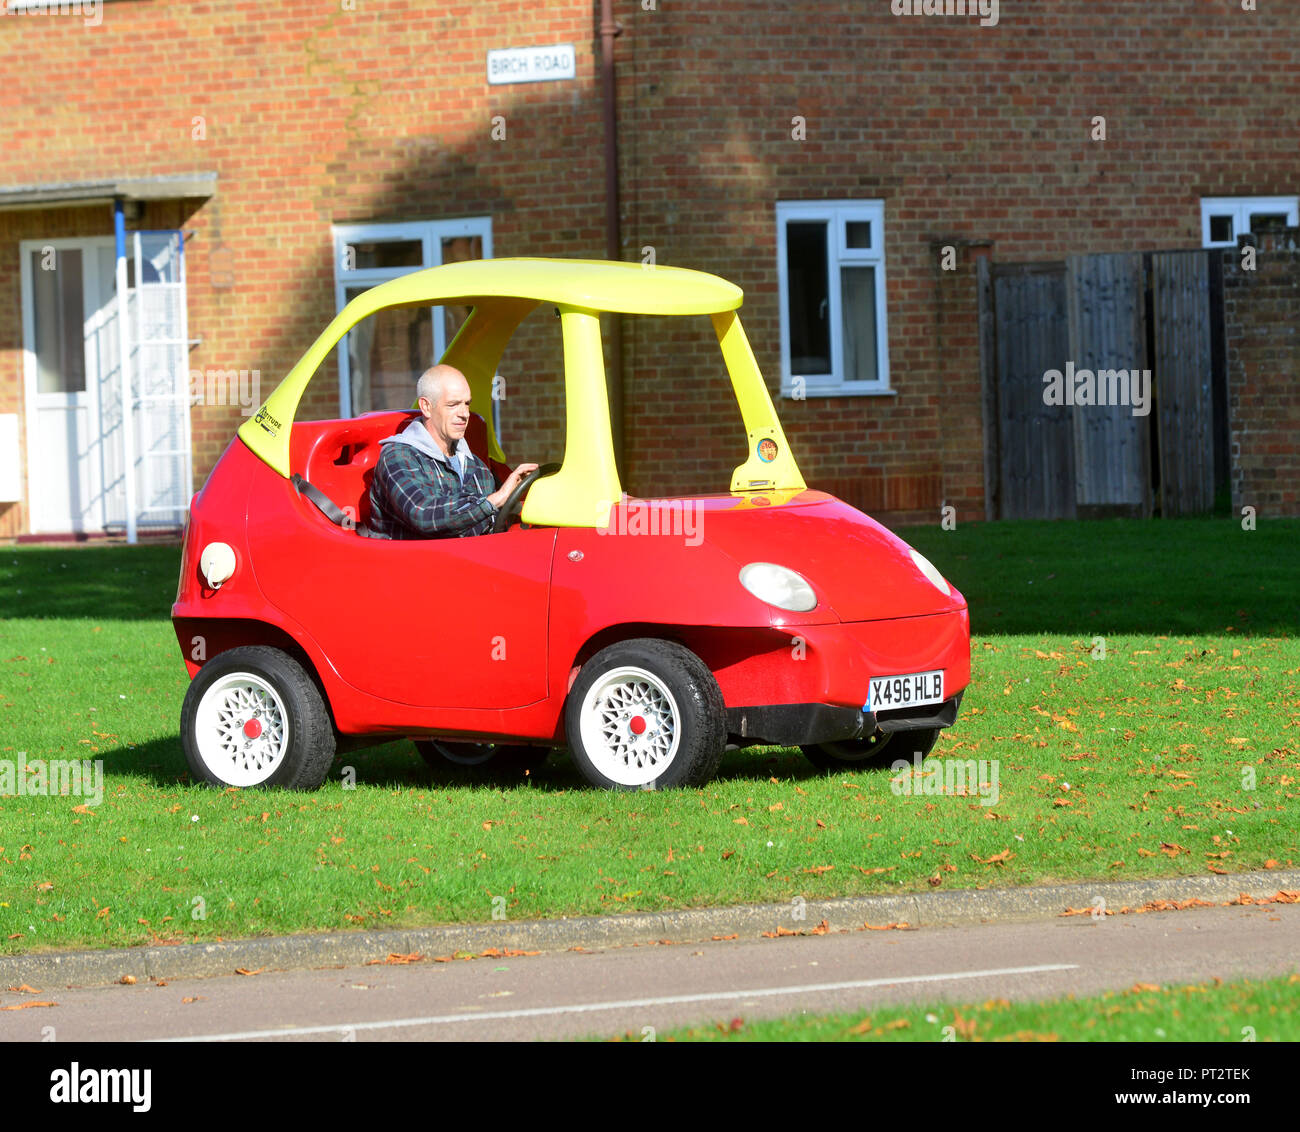 Matiz Daewoo Stock Photos Images Alamy Manual Street Legal Little Tikes Red And Yellow Car Is For Sale On Ebay